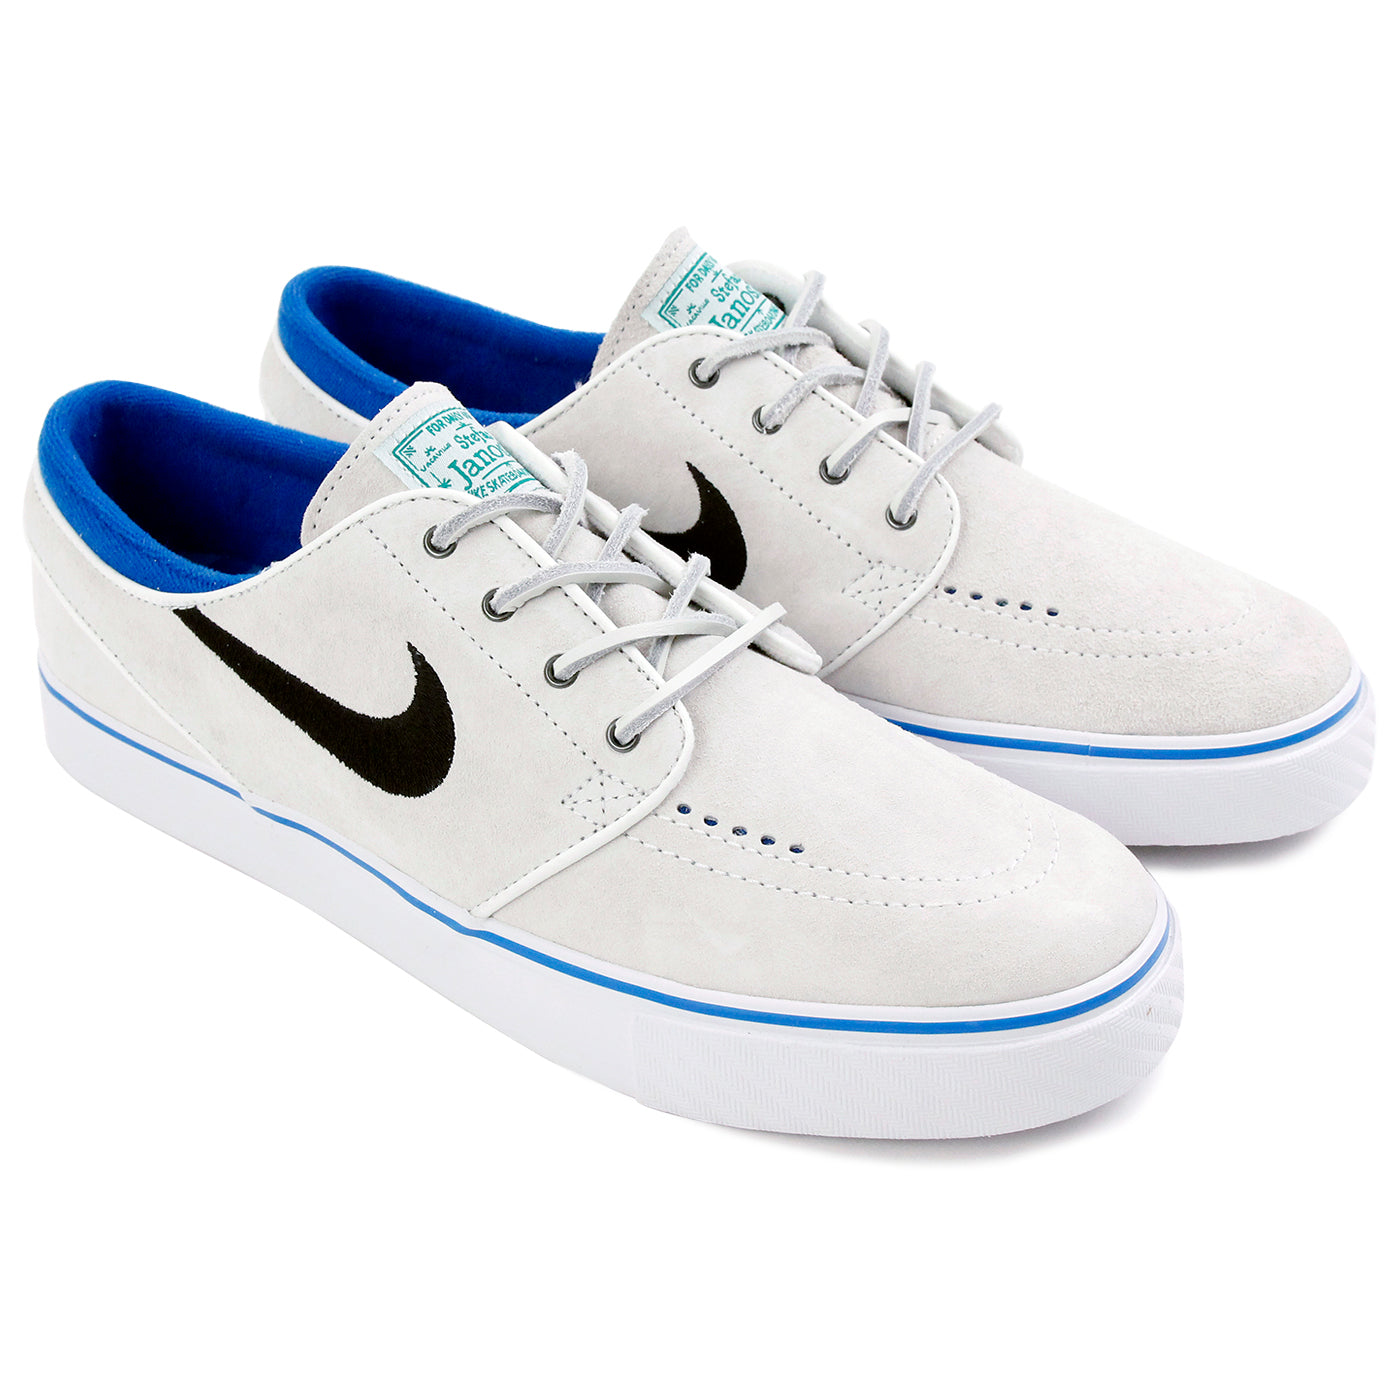 a1ae457587ef Stefan Janoski Shoes QS in Summit White   Black - Lucid Green by ...